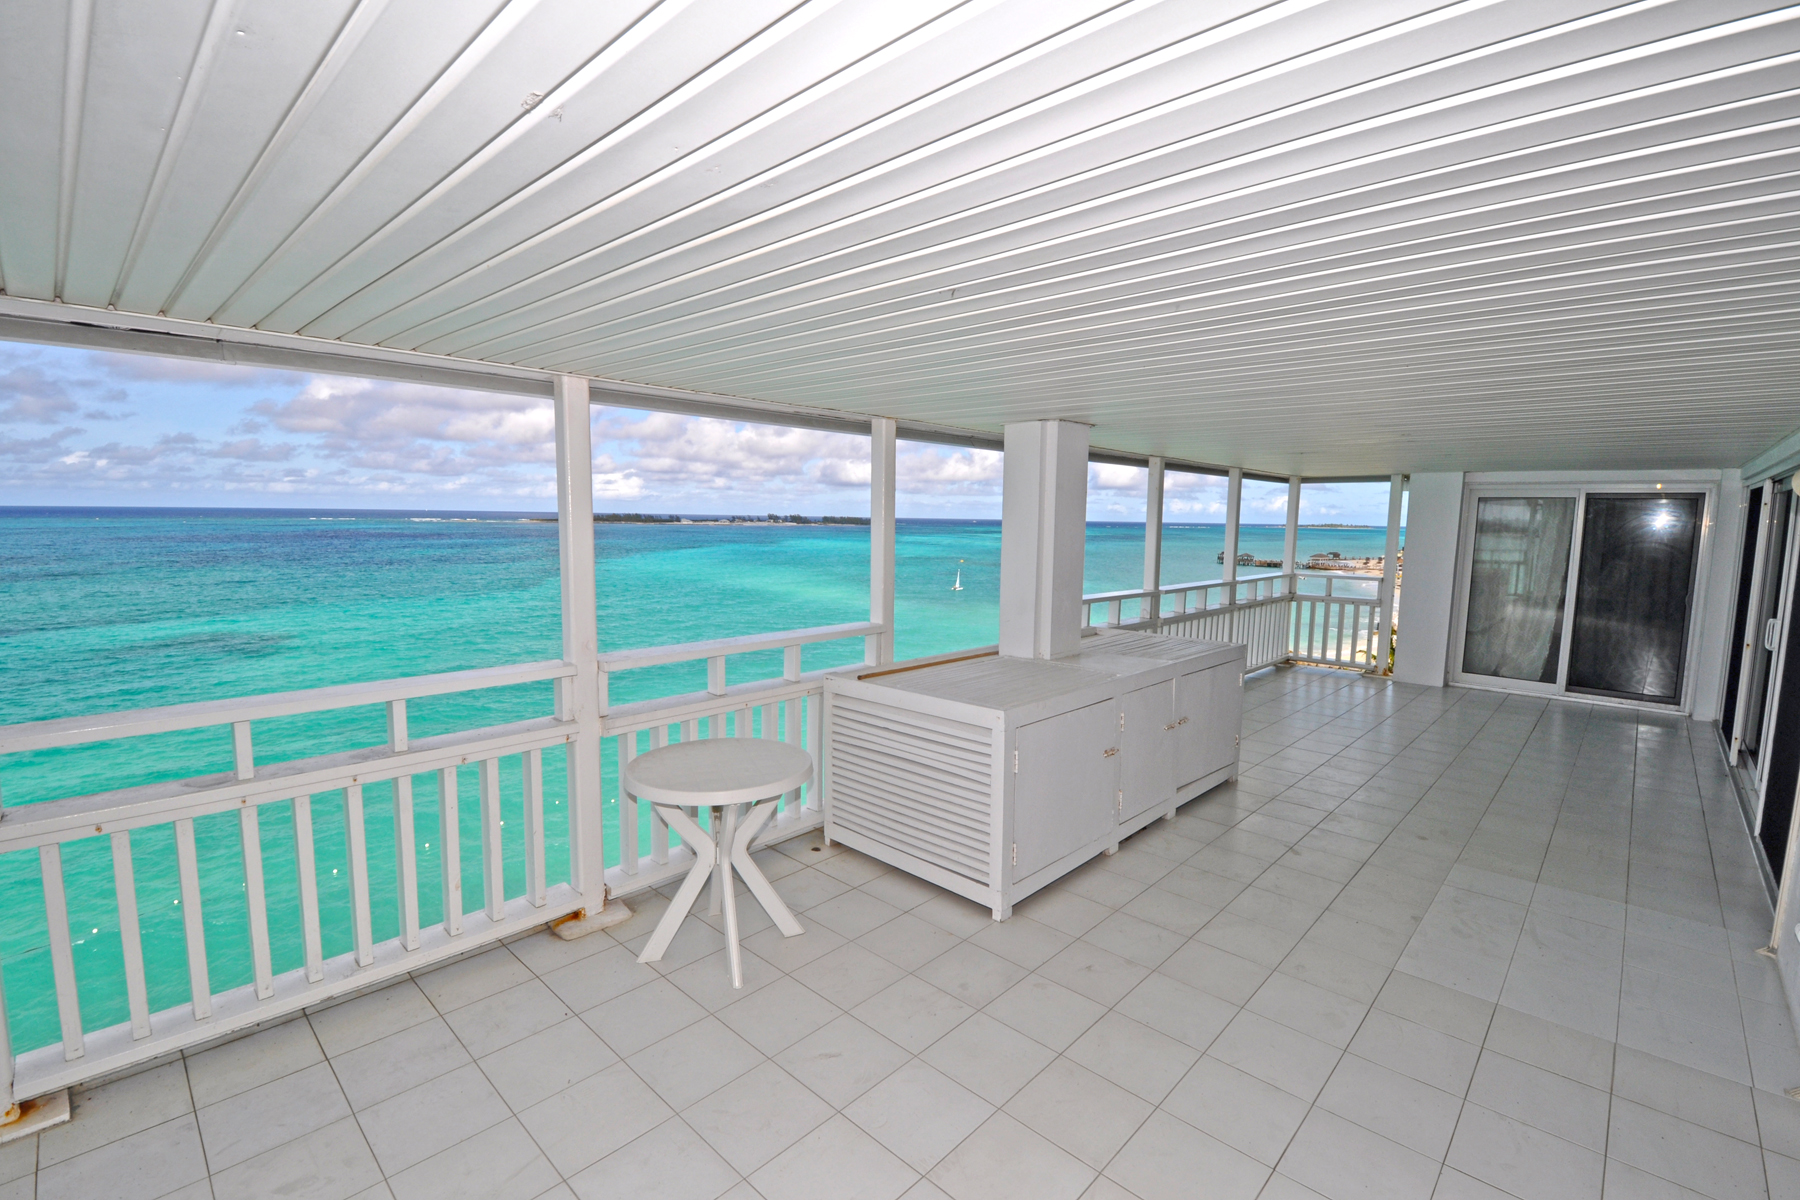 Condominium for Rent at Conchrest Penthouse, Cable Beach Conchrest, Cable Beach, Nassau And Paradise Island Bahamas